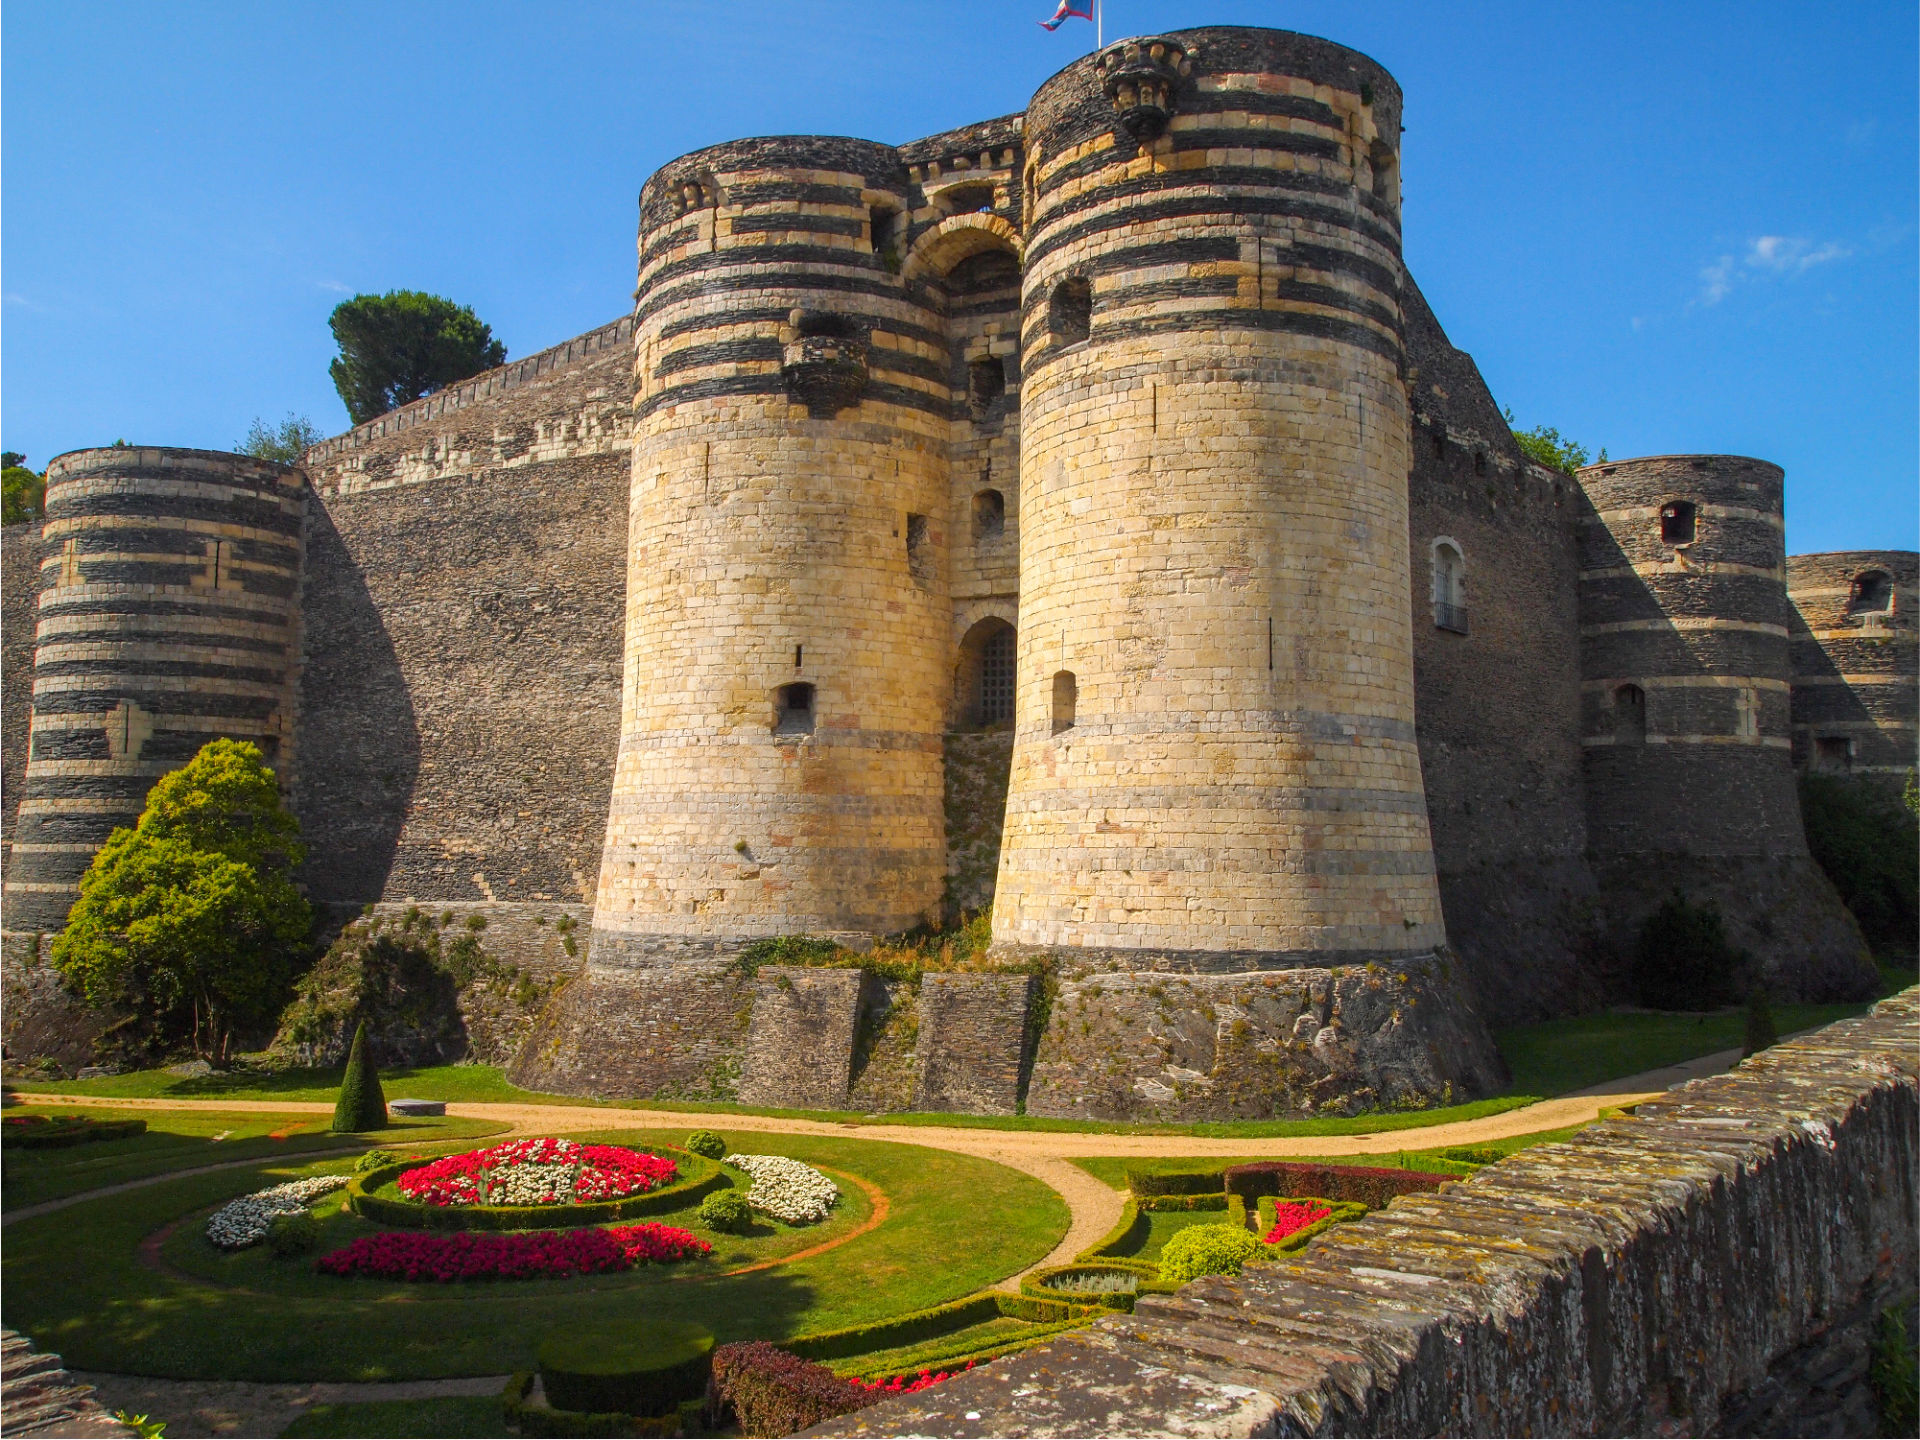 Château d'Angers: impregnable fortress